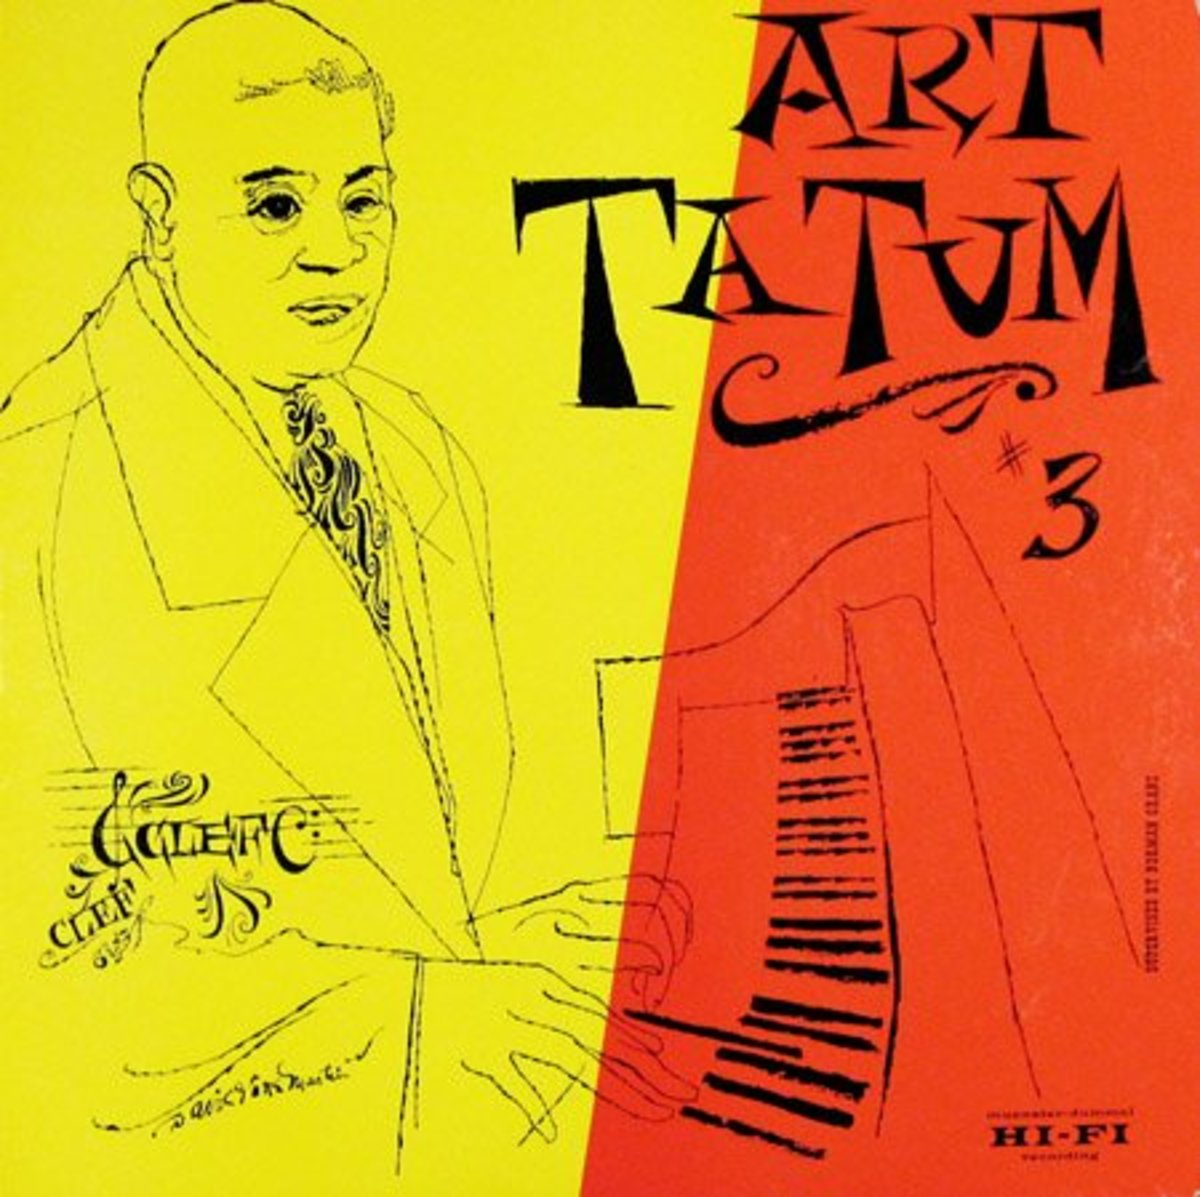 "Art Tatum ""The Genius of Art Tatum, vol. 3"" Clef  614 12"" LP Vinyl Record (1954) Album Cover Art by David Stone Martin"